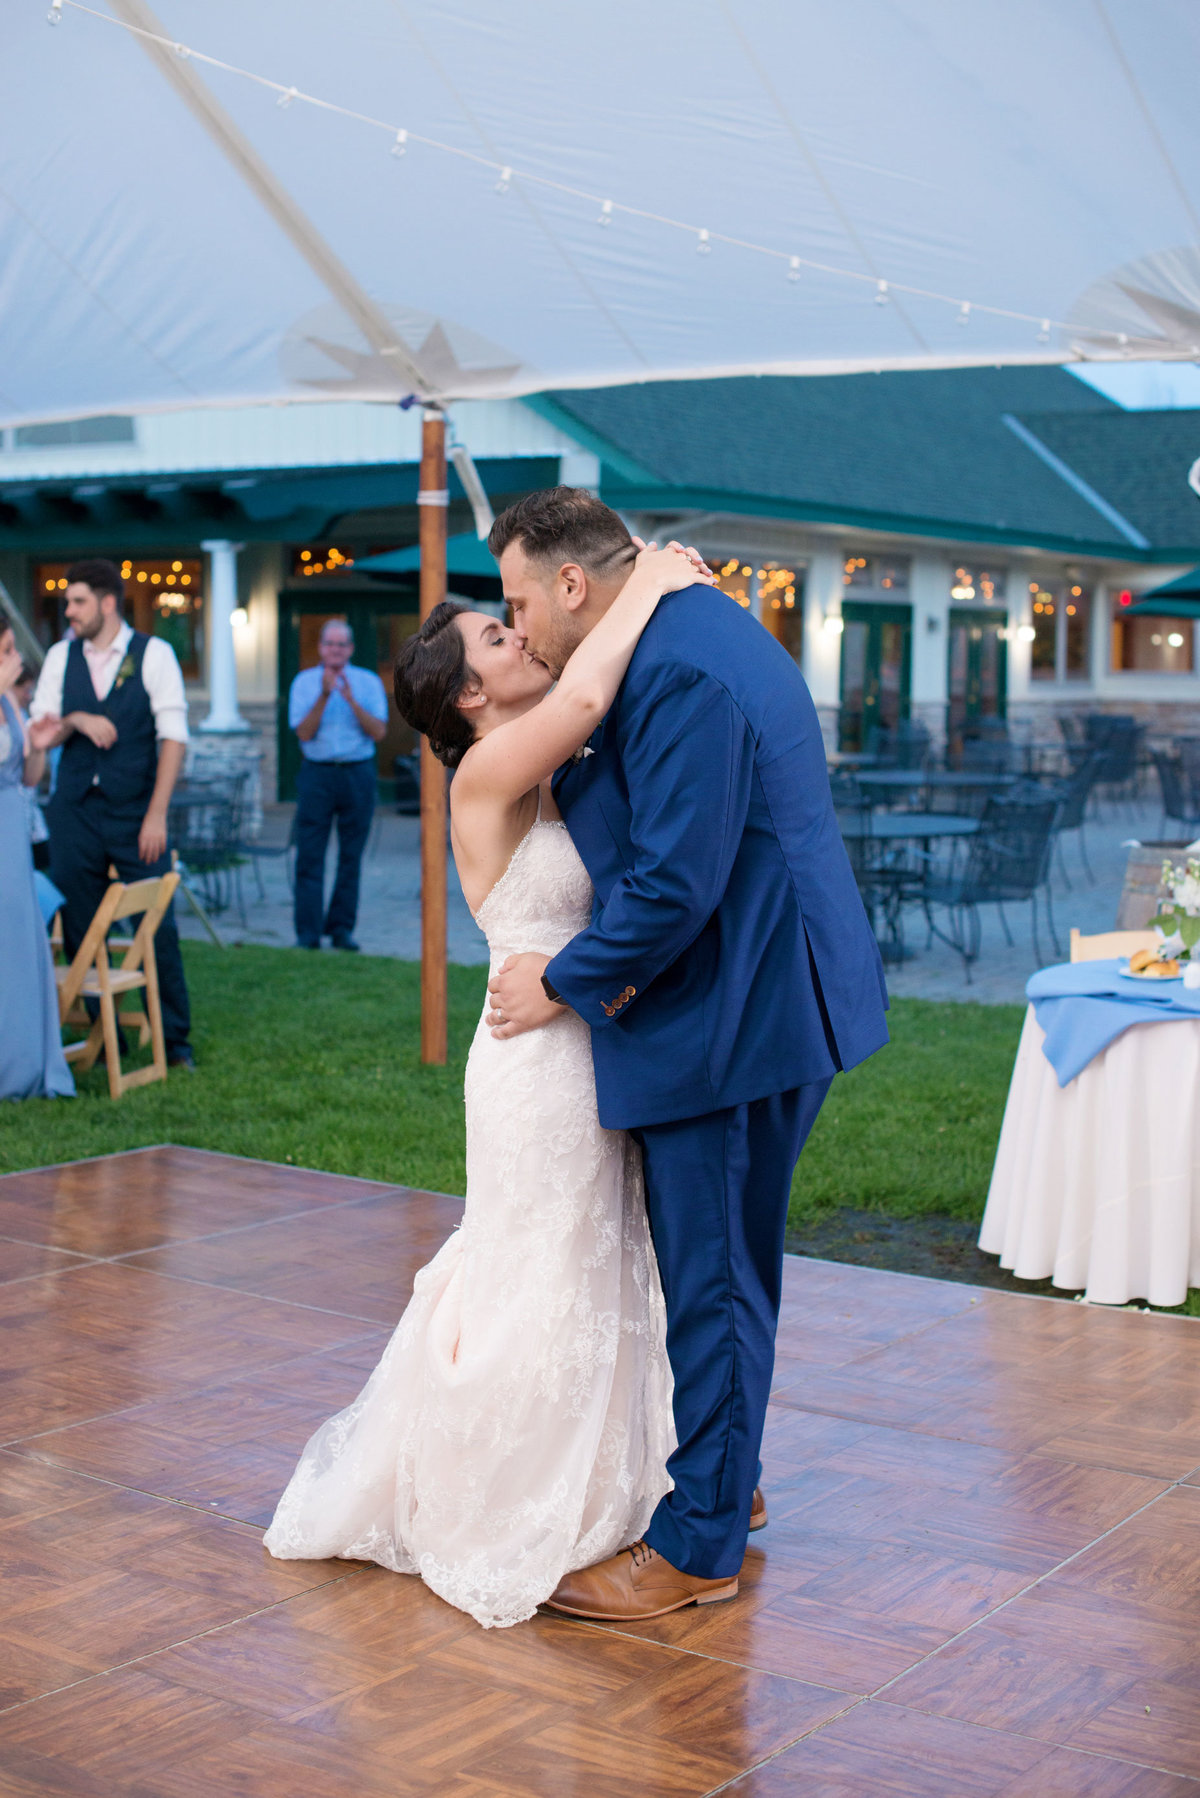 Bride and groom's first dance at Duckwalk Vineyards